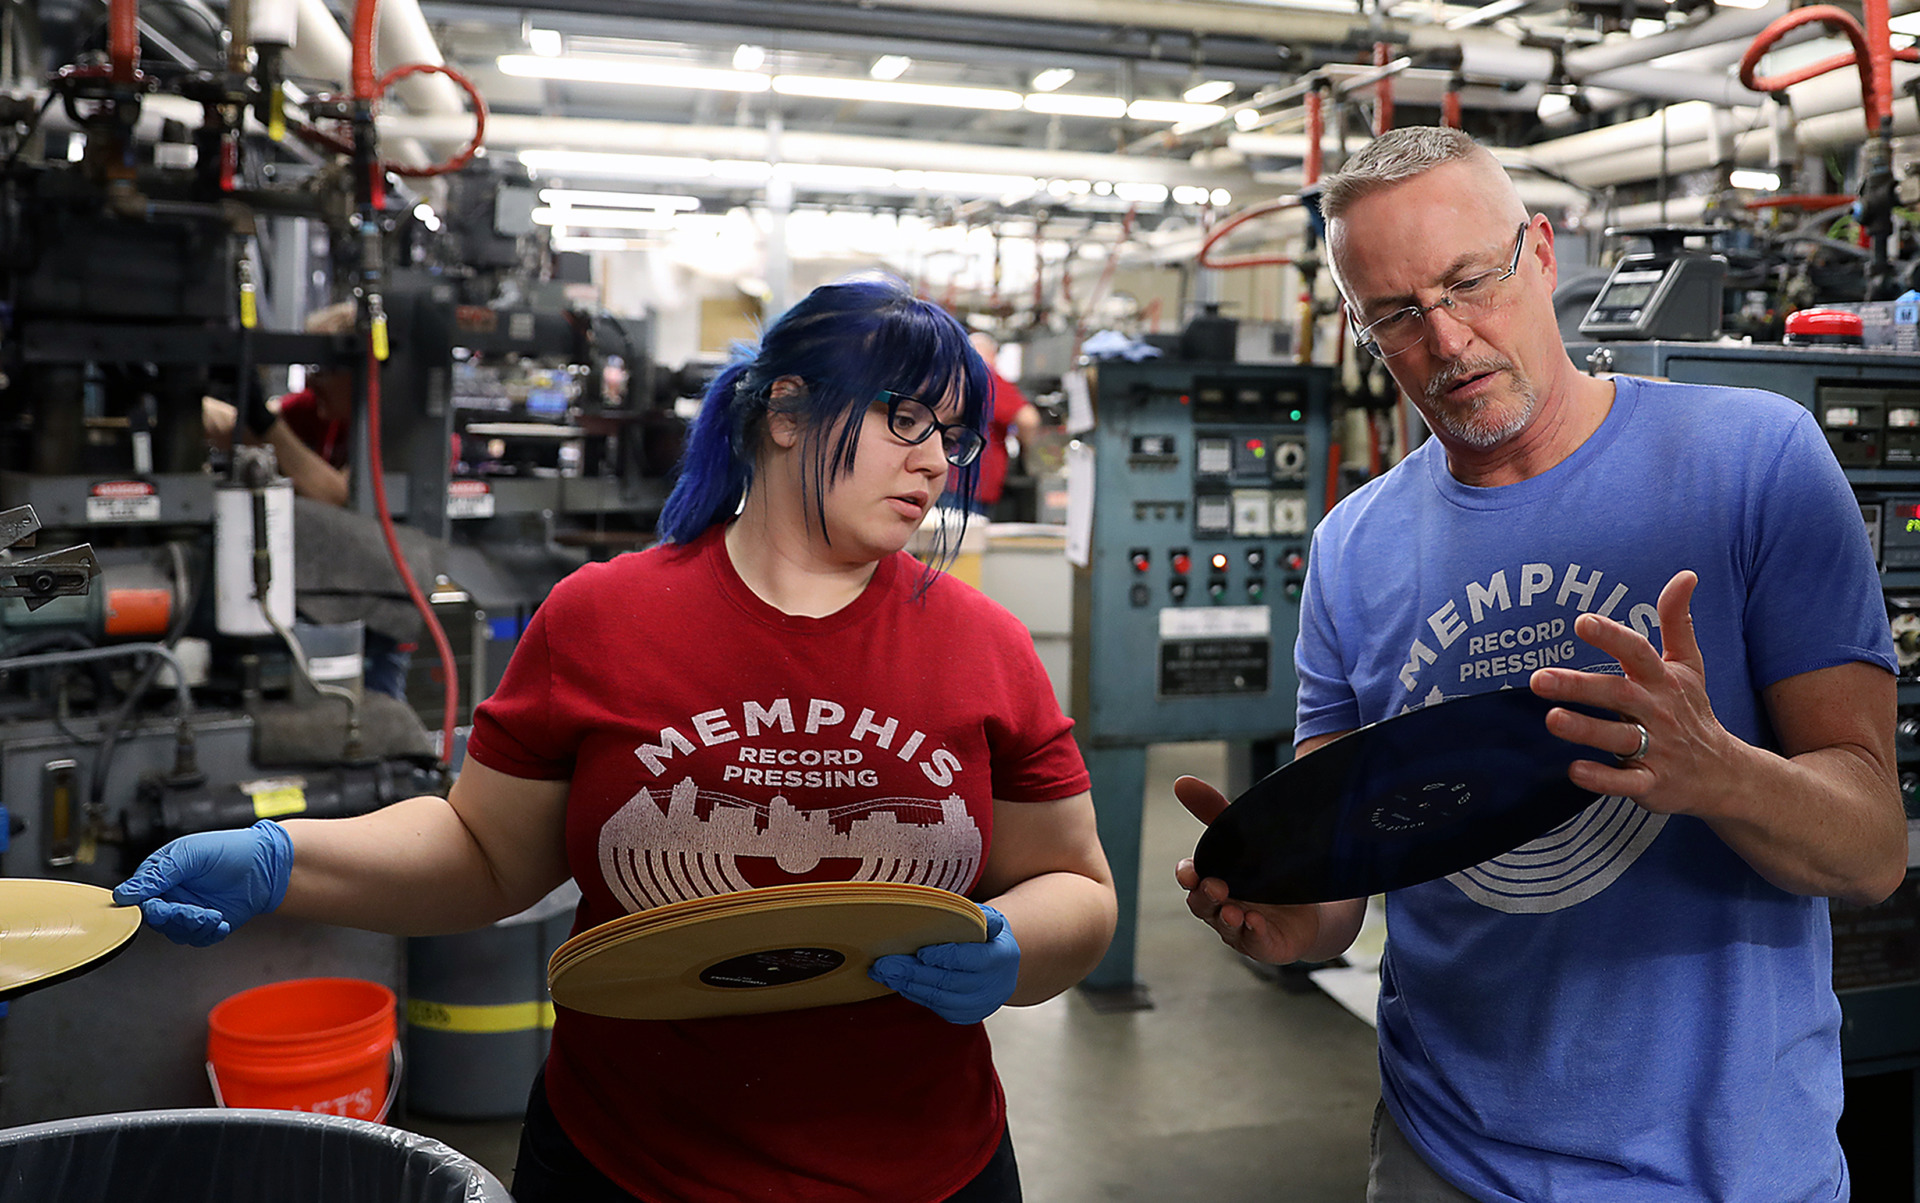 <strong>Lillia Sample and operations manager Lance Binder inspect records as they come off the presses at Memphis Record Pressing's Bartlett location. Currently, the facility produces more than 300,000 records per month, but hope to bring that number closer to 450,000 with the addition of new equipment.</strong> (Patrick Lantrip/ Daily Memphian)